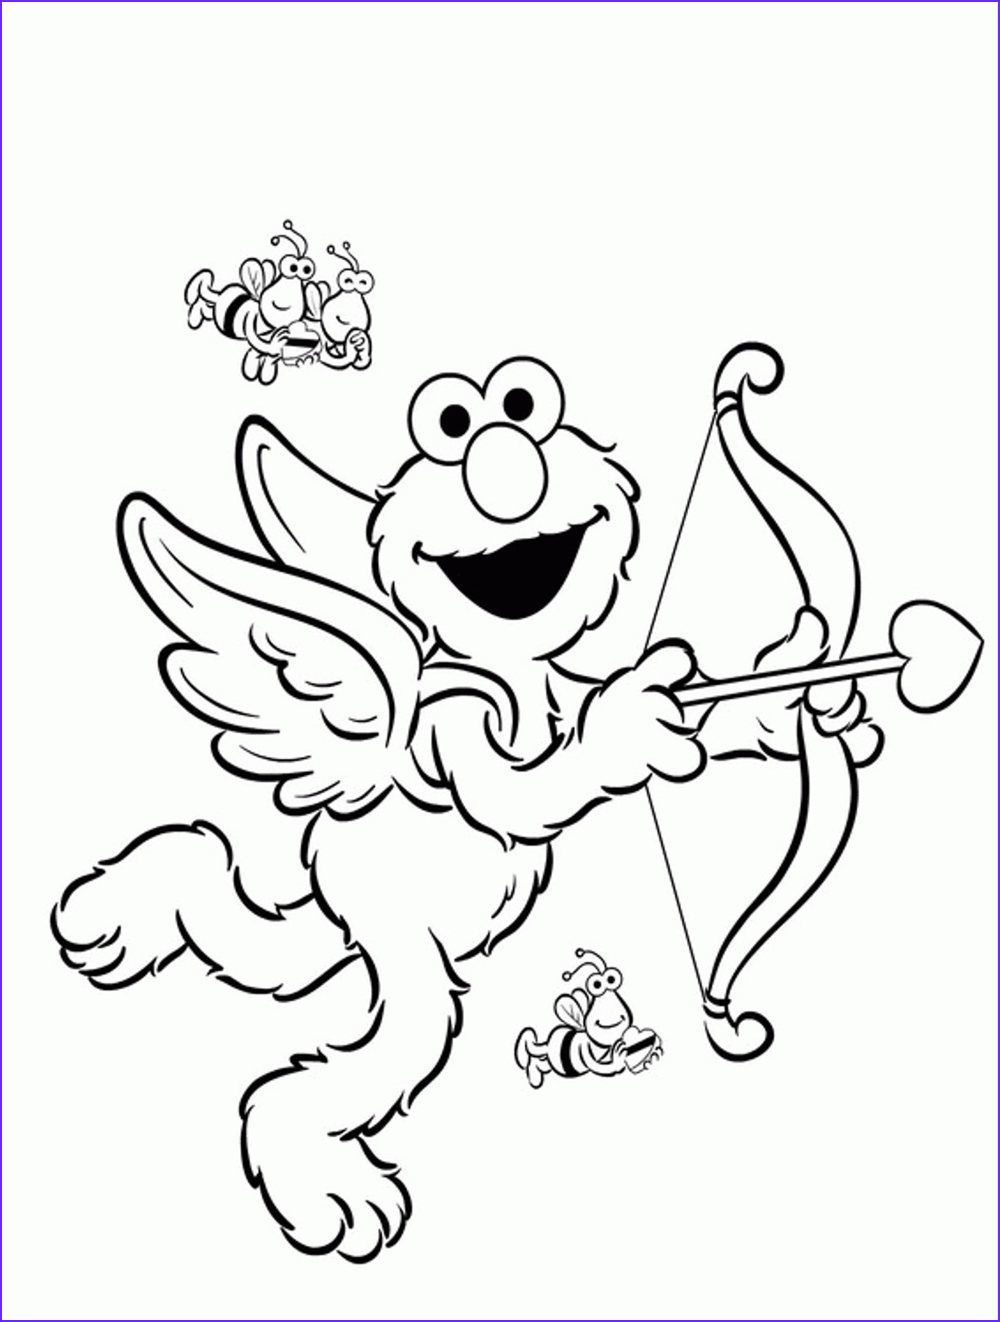 13 Beautiful Gallery Of Elmo Coloring Picture in 2020